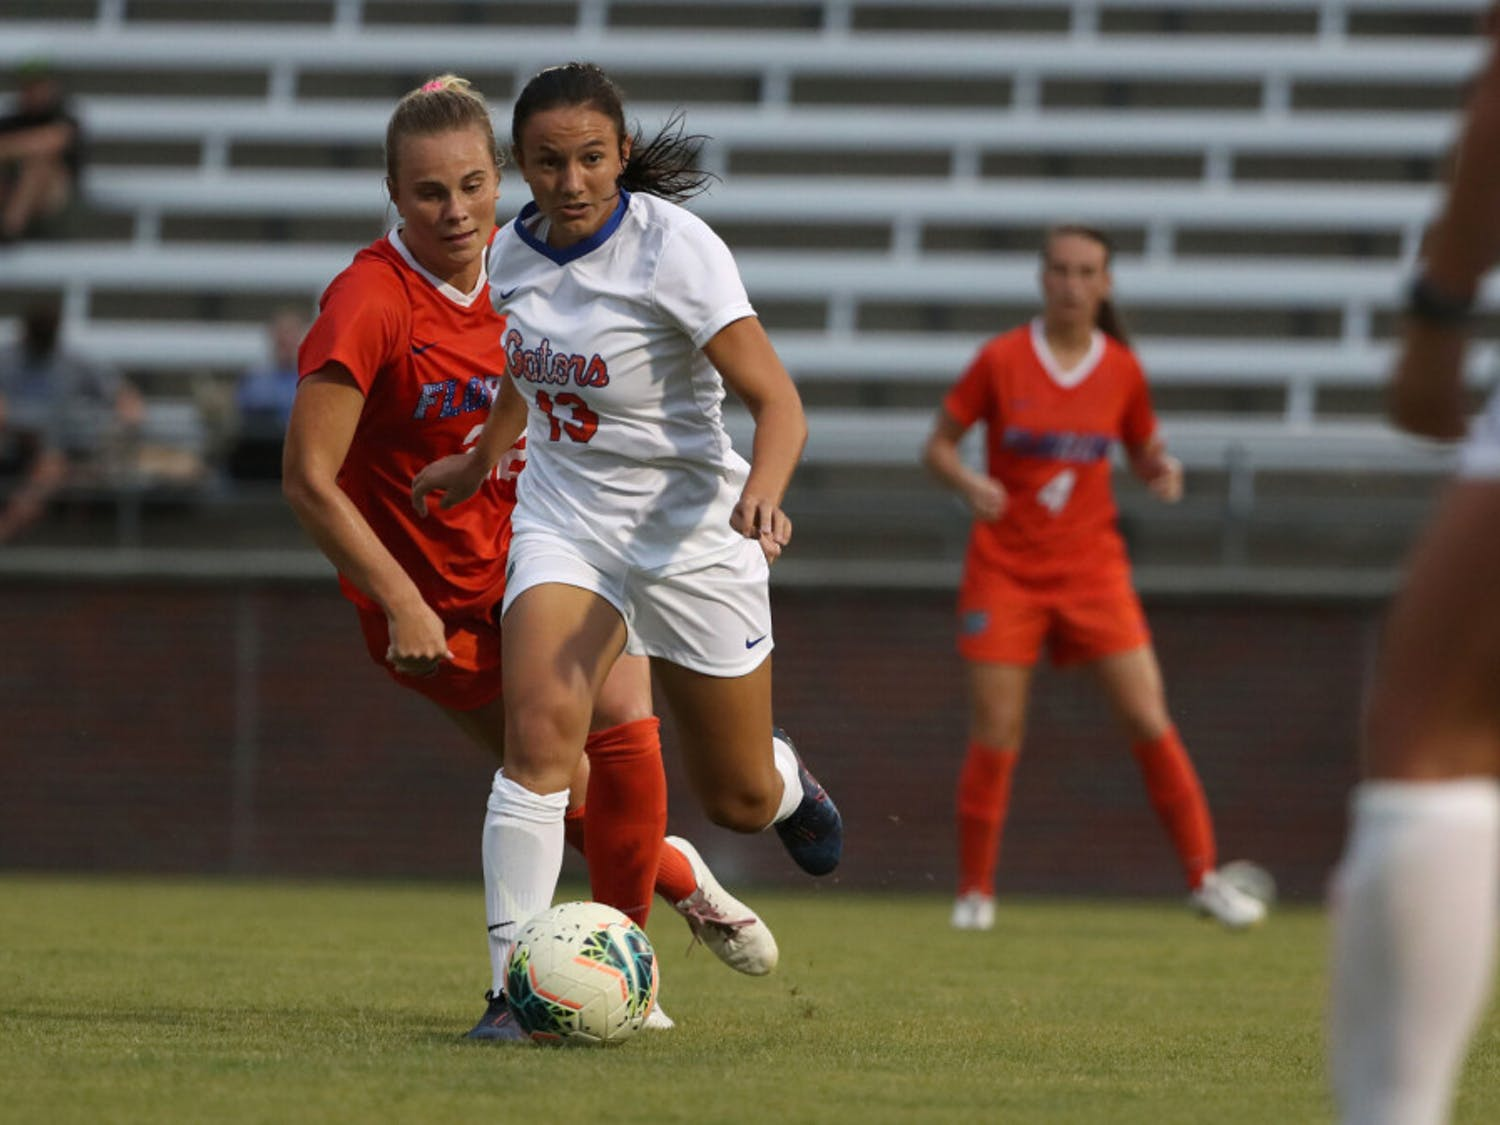 Florida's Izzy Kadzban dribbles the ball on a run during the Gators' COVID Cup scrimmage on Thursday, August 20, 2020 at Donald R. Dizney Stadium in Gainesville, Florida. Photo courtesy of the UAA.